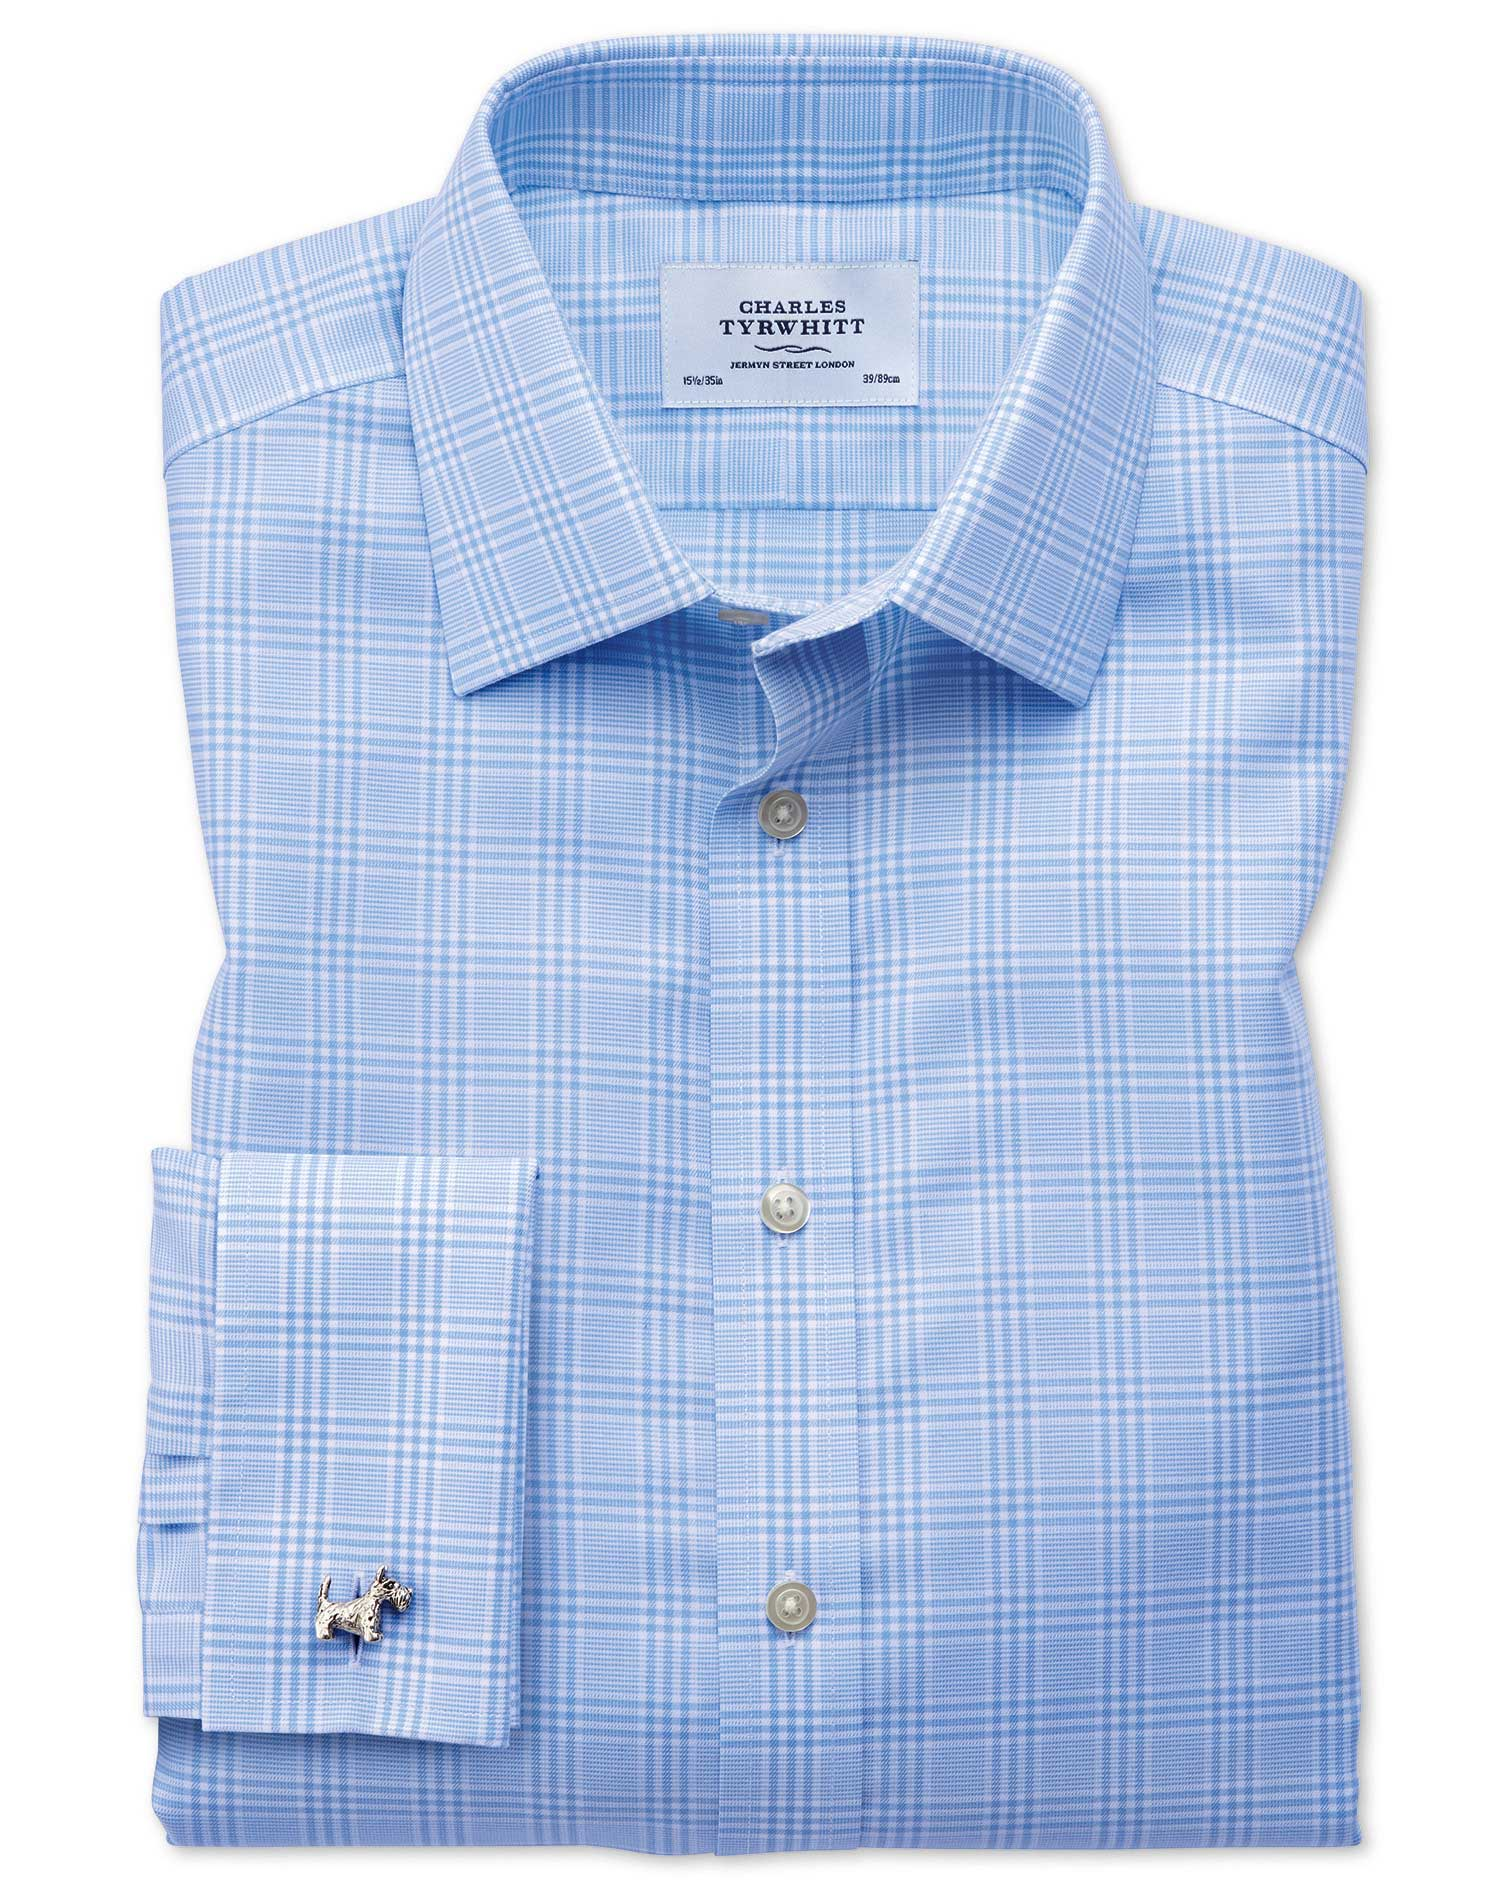 Classic Fit Non-Iron Prince Of Wales Sky Blue Cotton Formal Shirt Double Cuff Size 17.5/34 by Charle